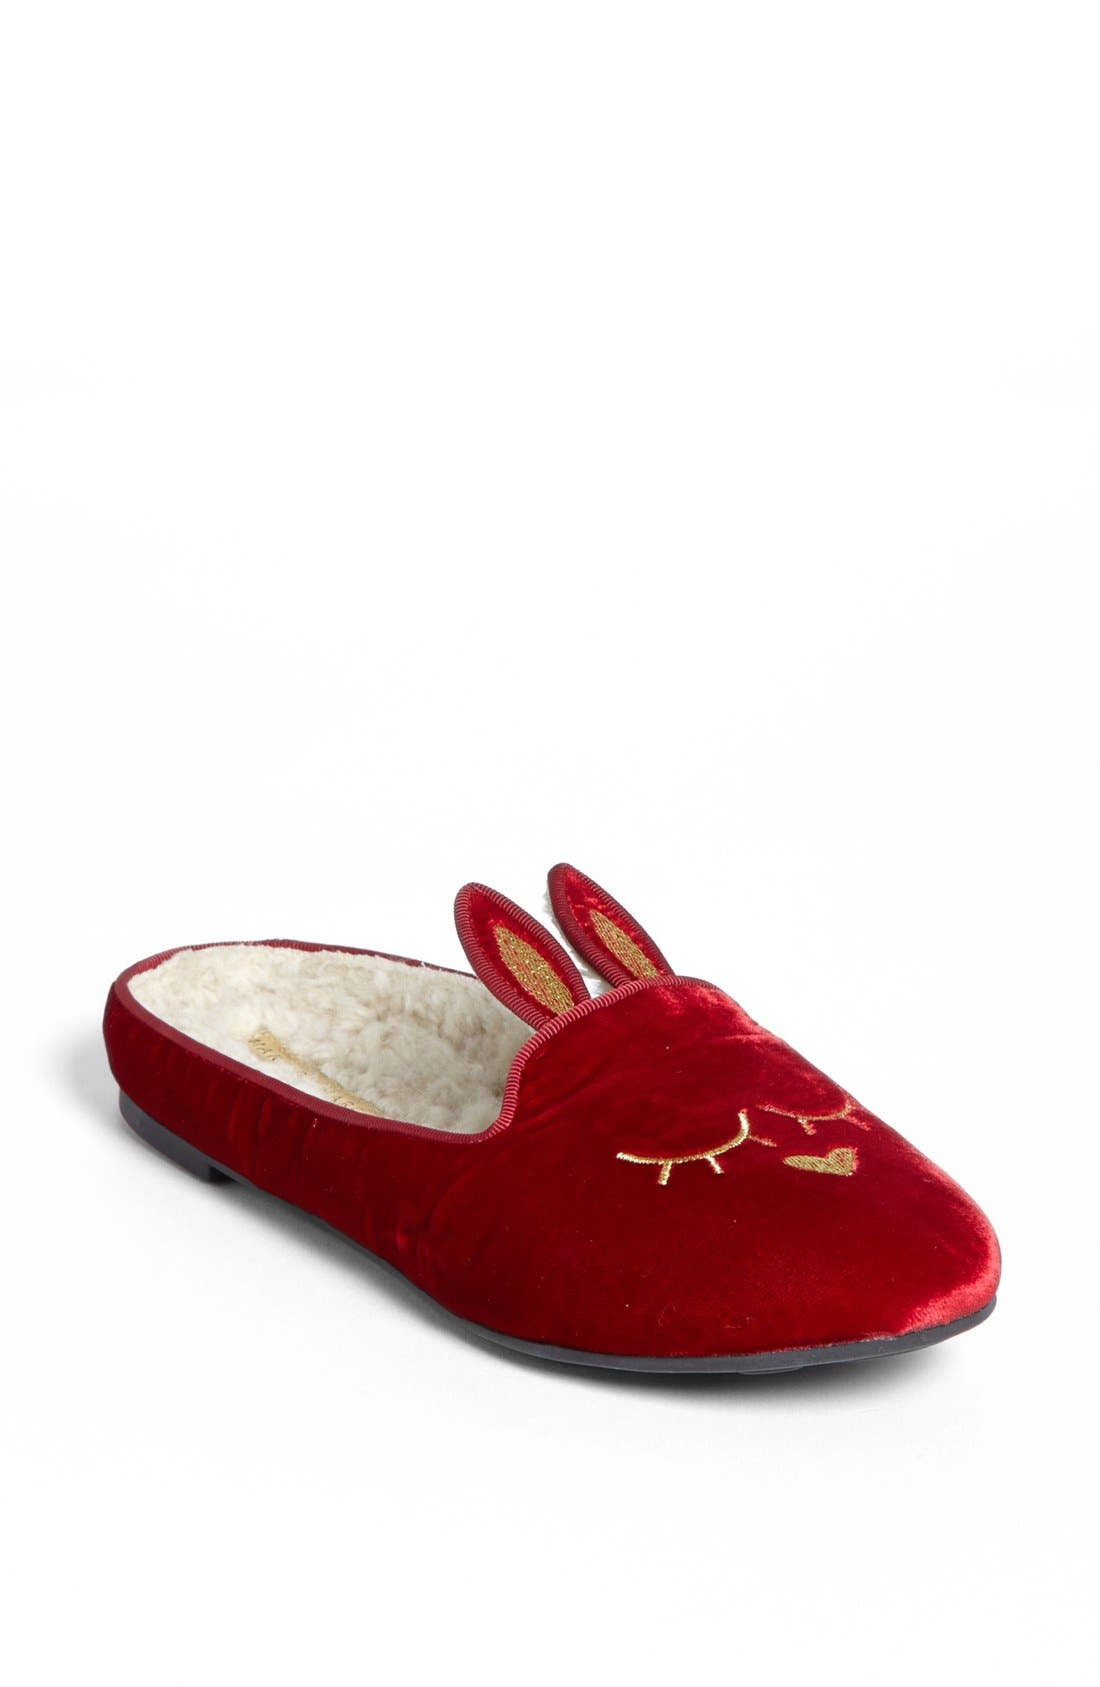 Alternate Image 1 Selected - MARC BY MARC JACOBS 'Sleeping Bunny' Slipper